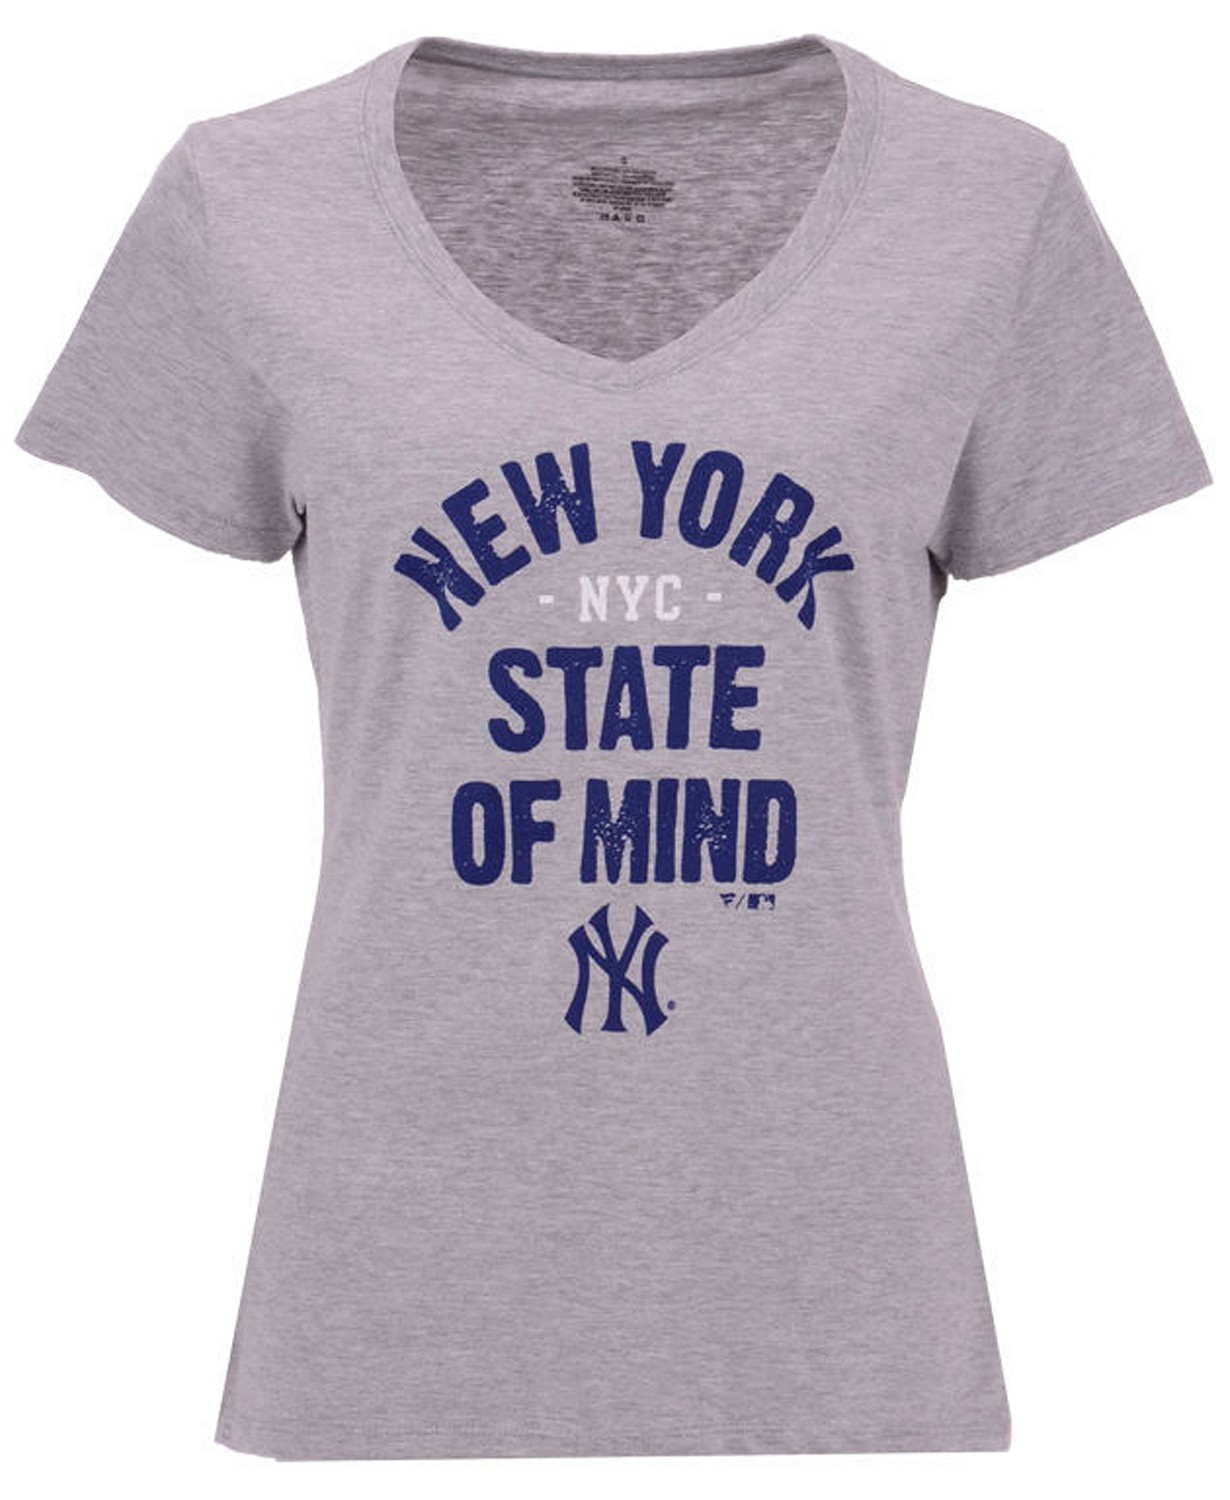 04202525e0f28 New York Yankees Hometown T-Shirt-Women s-Majestic - NY Sports Shop